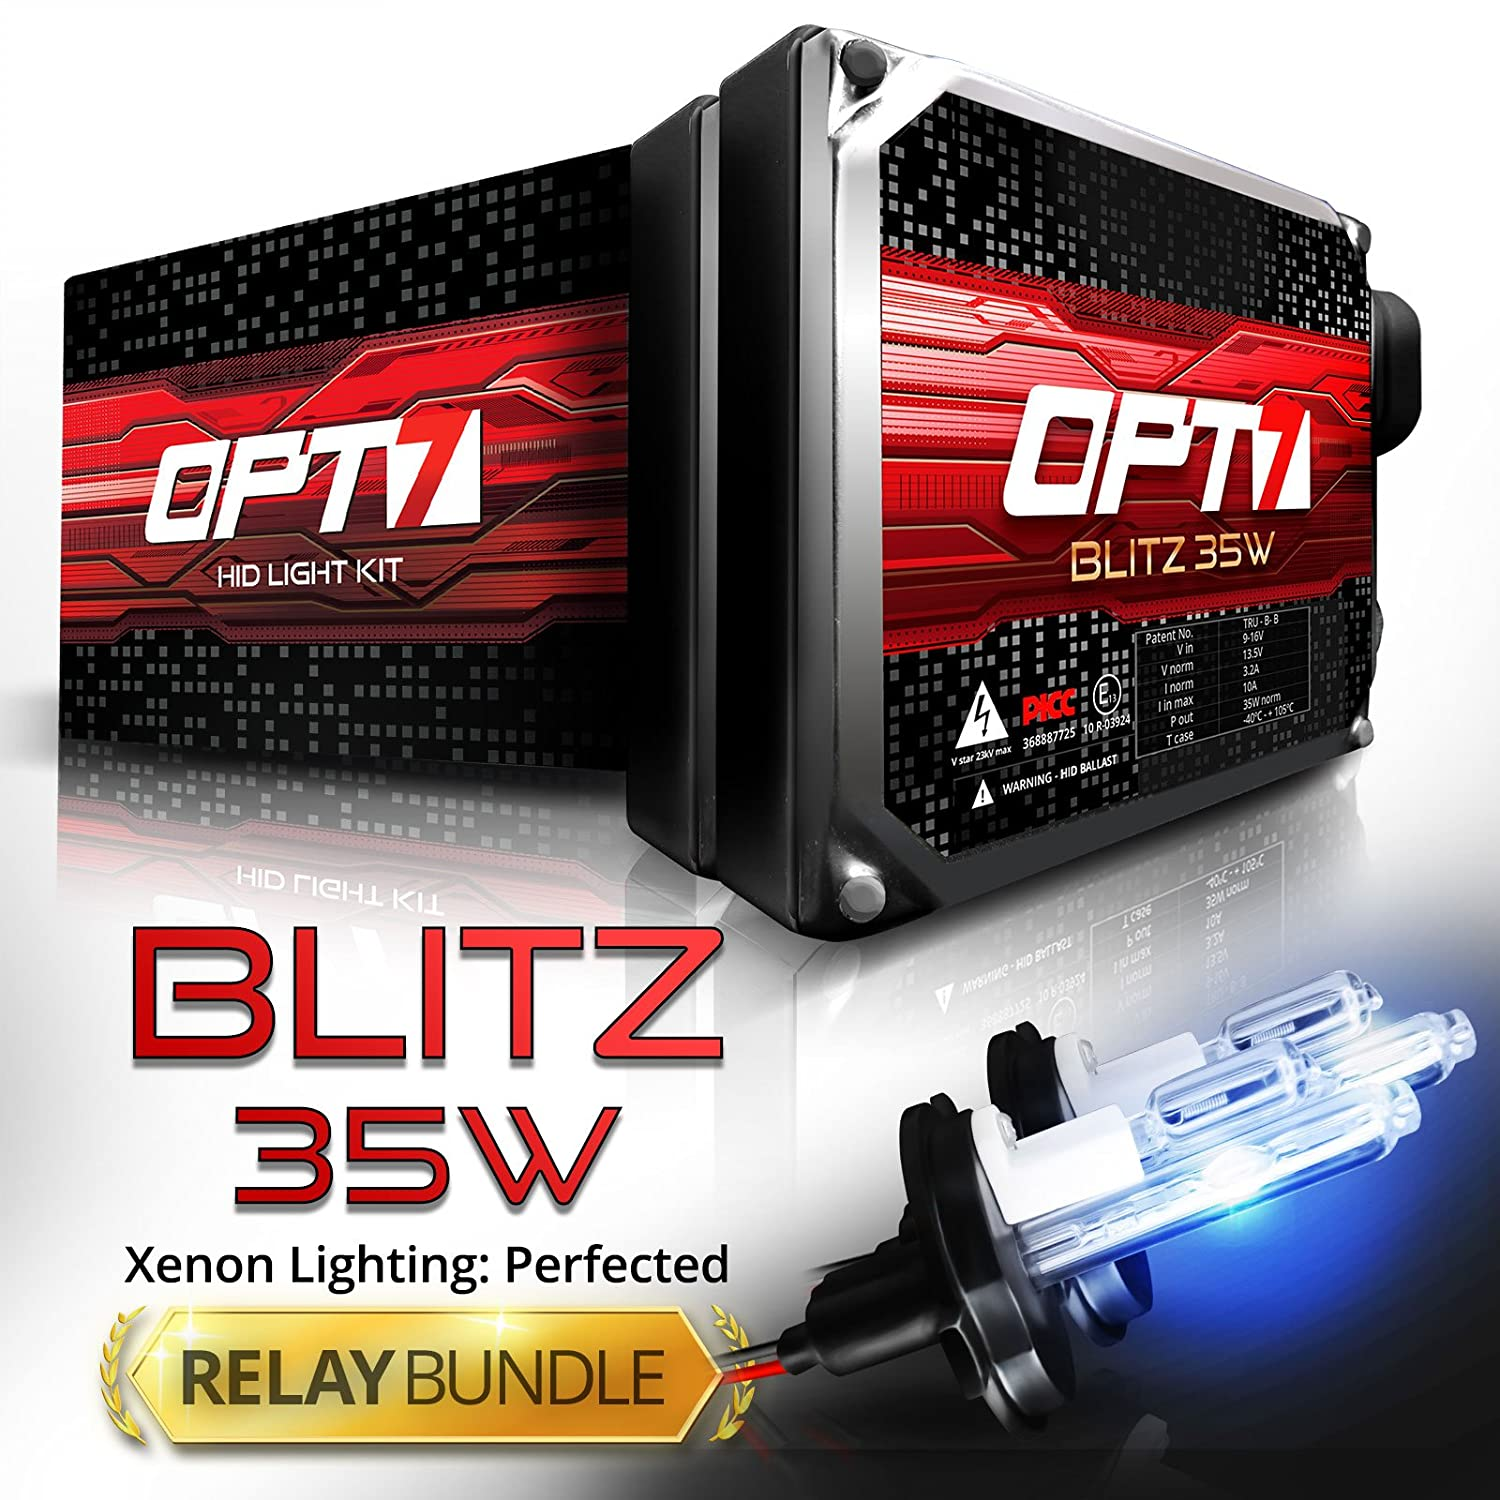 Opt7 Blitz 35w 9007 Hi Lo Hid Kit Relay Bundle All Xentec Wiring Diagram Bulb Sizes And Colors 2 Yr Warranty 6000k Lightning Blue Xenon Light Automotive